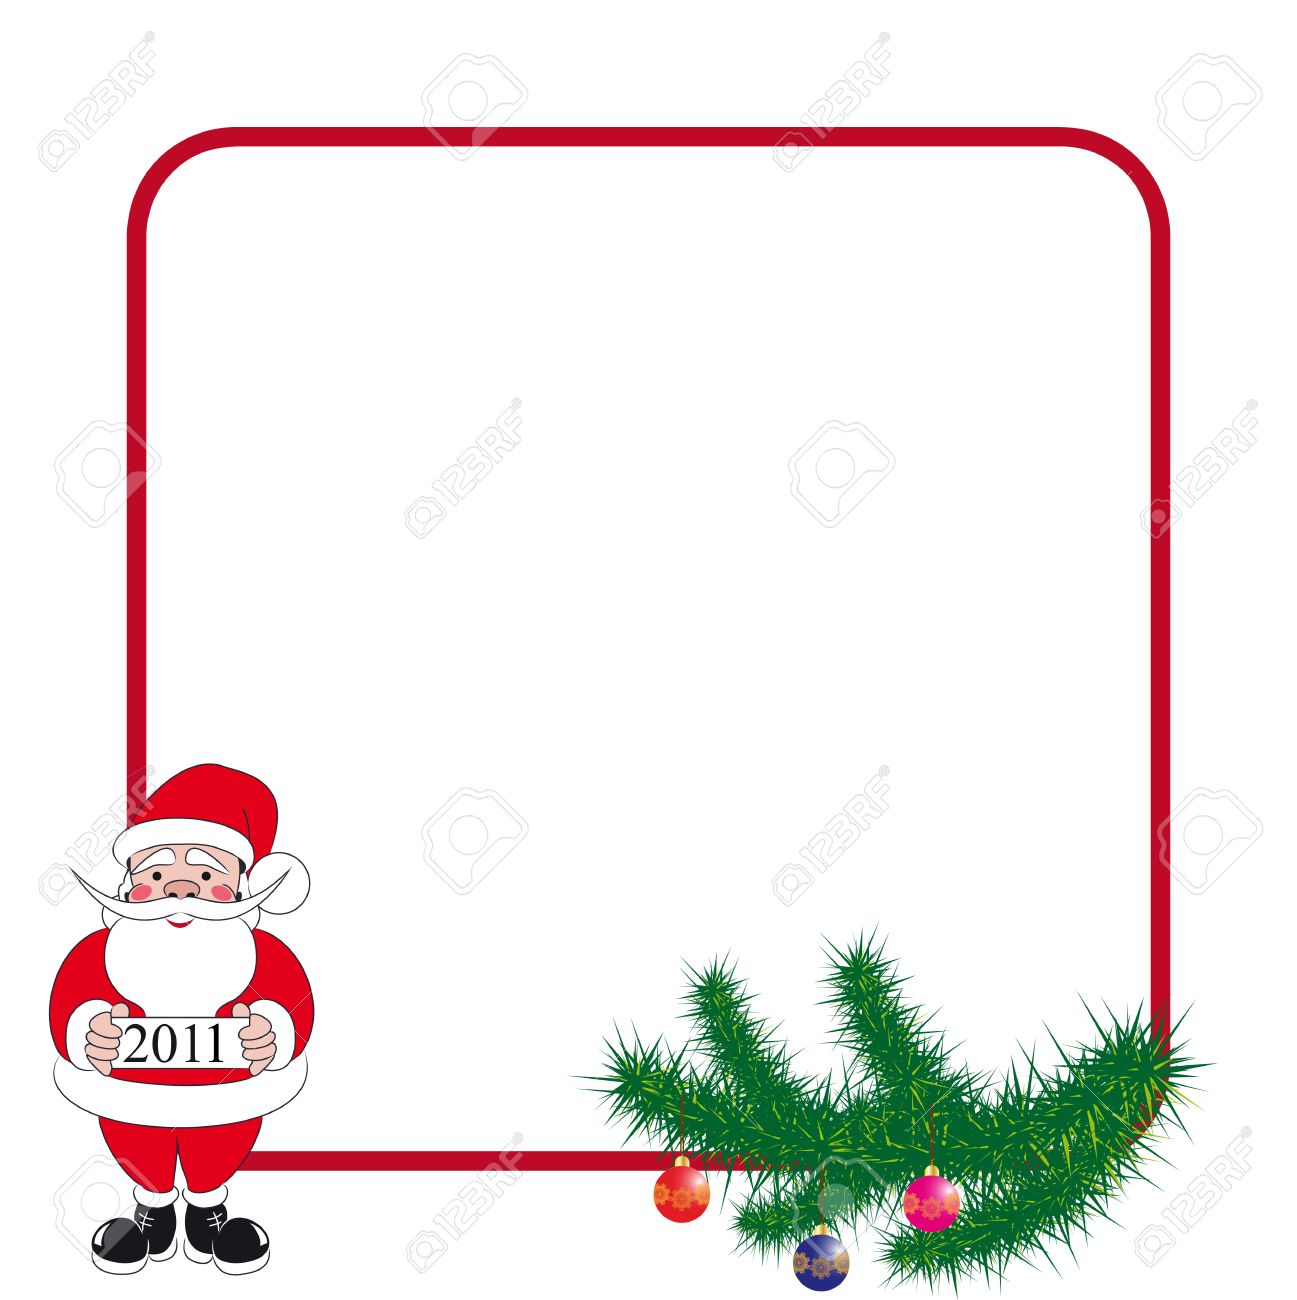 Greeting Frame With Santa Claus And Spruce Branches For Christmas